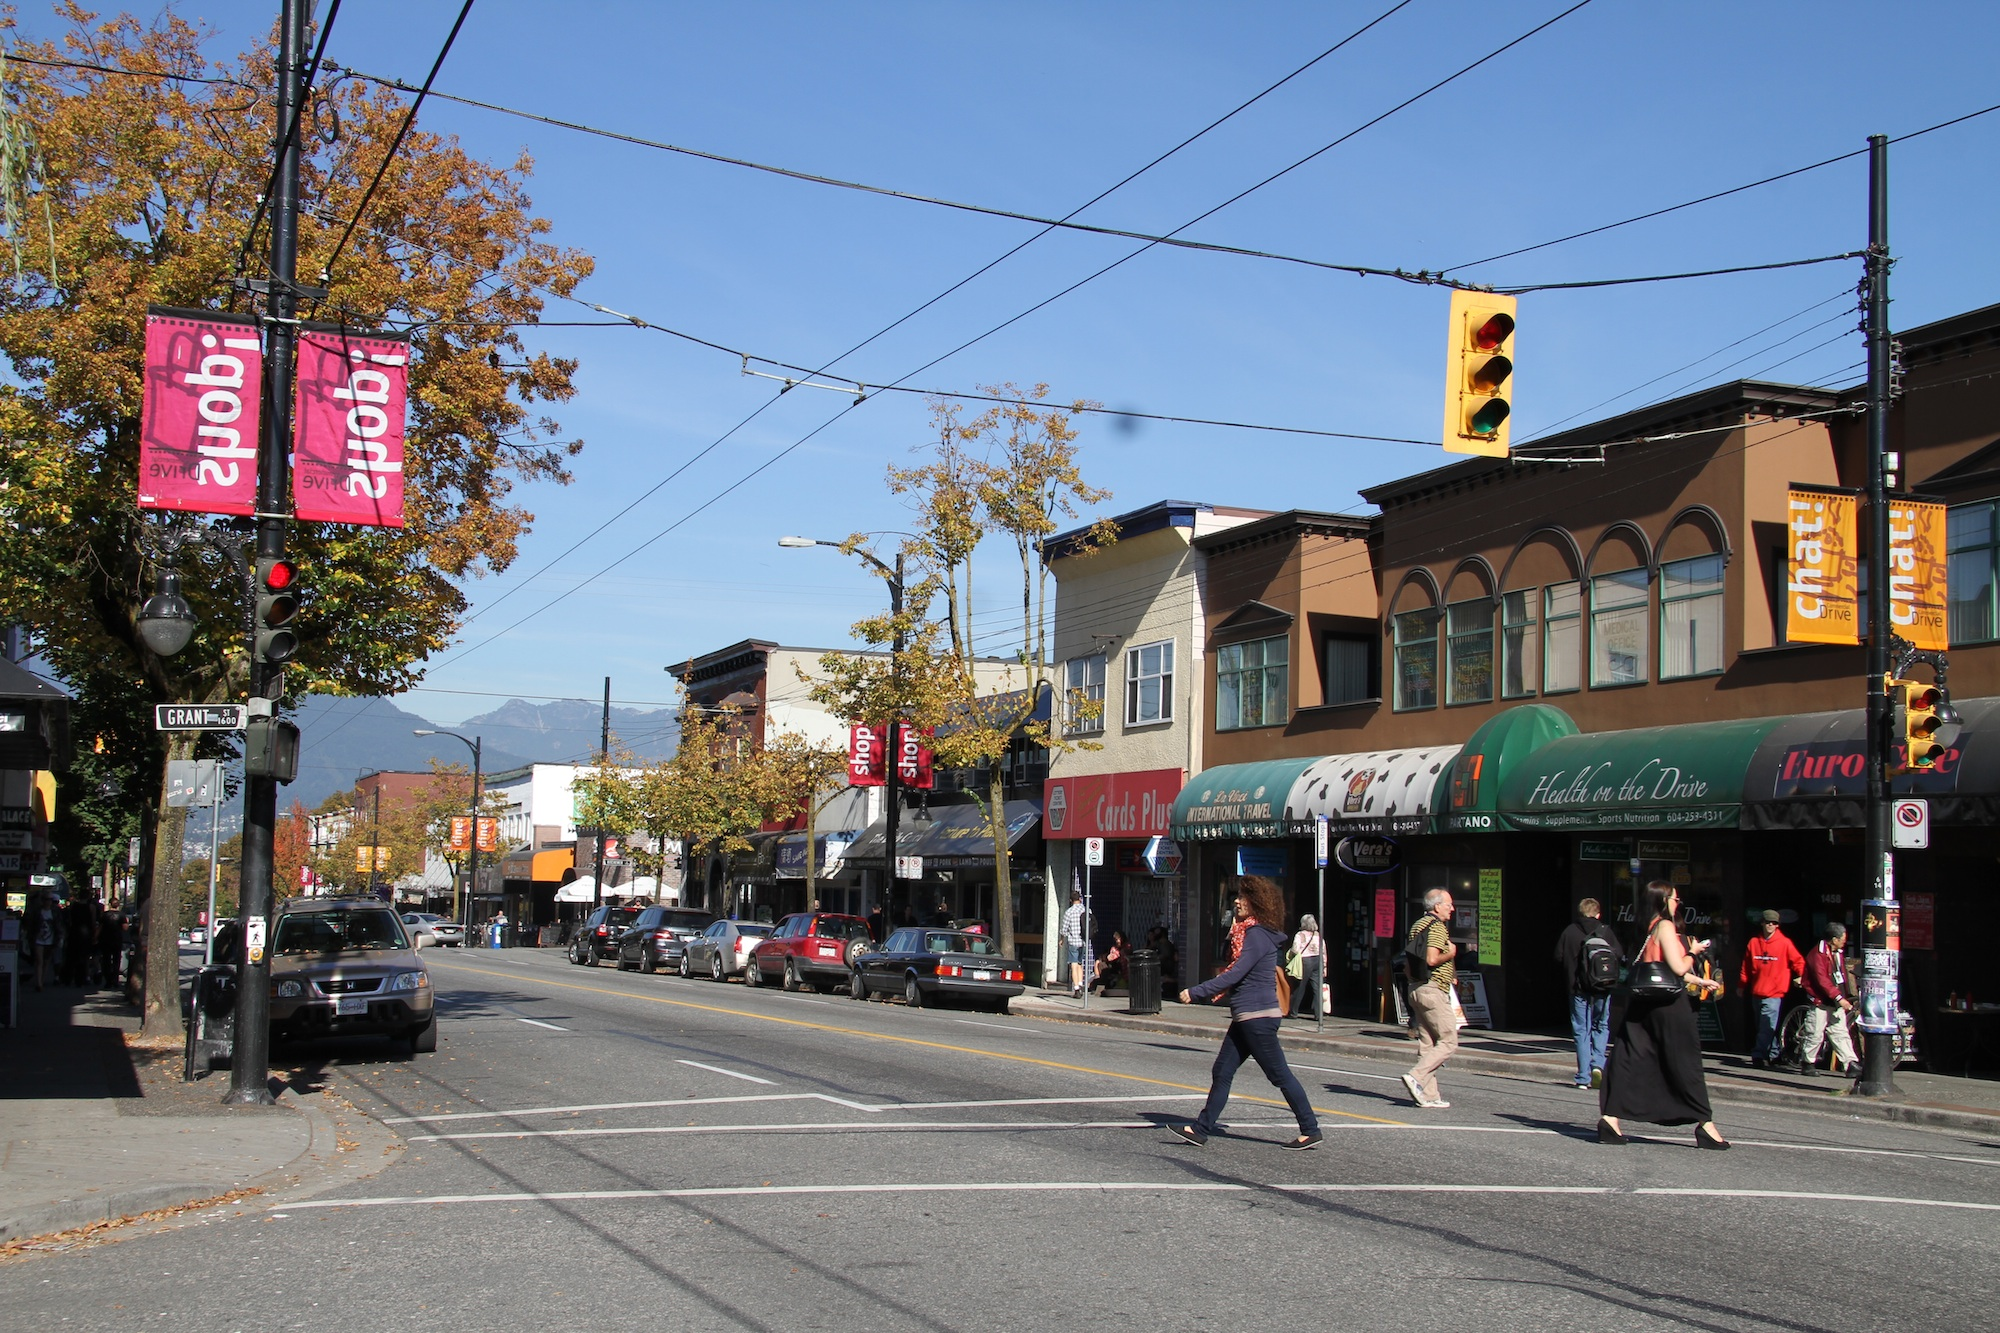 Commercial Drive, Vancouver in October